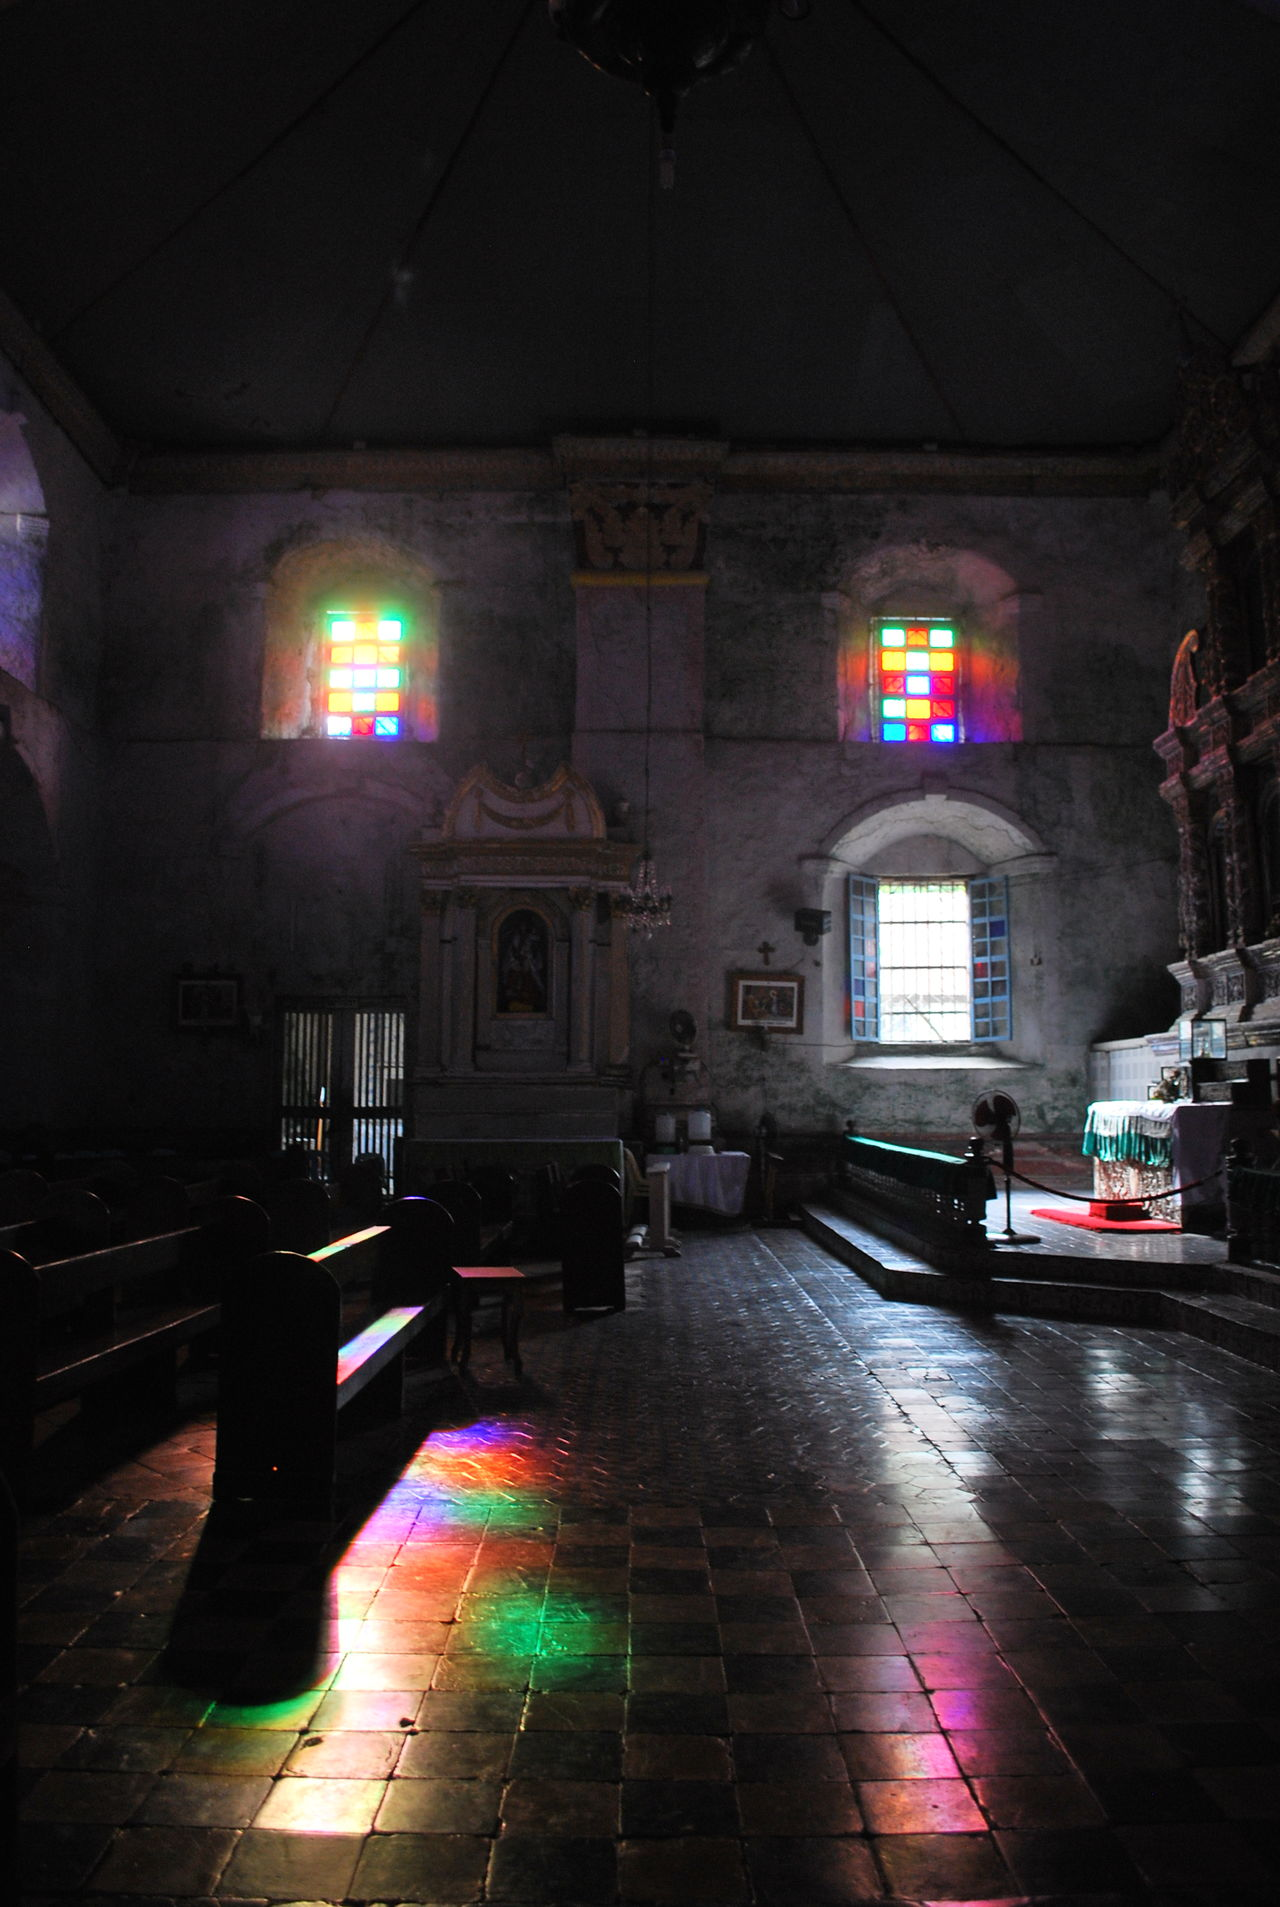 Stained Reflection Altar Architecture Built Structure Colored Windows Day Illuminated Indoors  No People Old Church Old Church Floor Prayers Reflected Color Reflected Colors Serenity Silence Moment Silent Altar Spirituality Stained Stained Glass Stained Glass Window